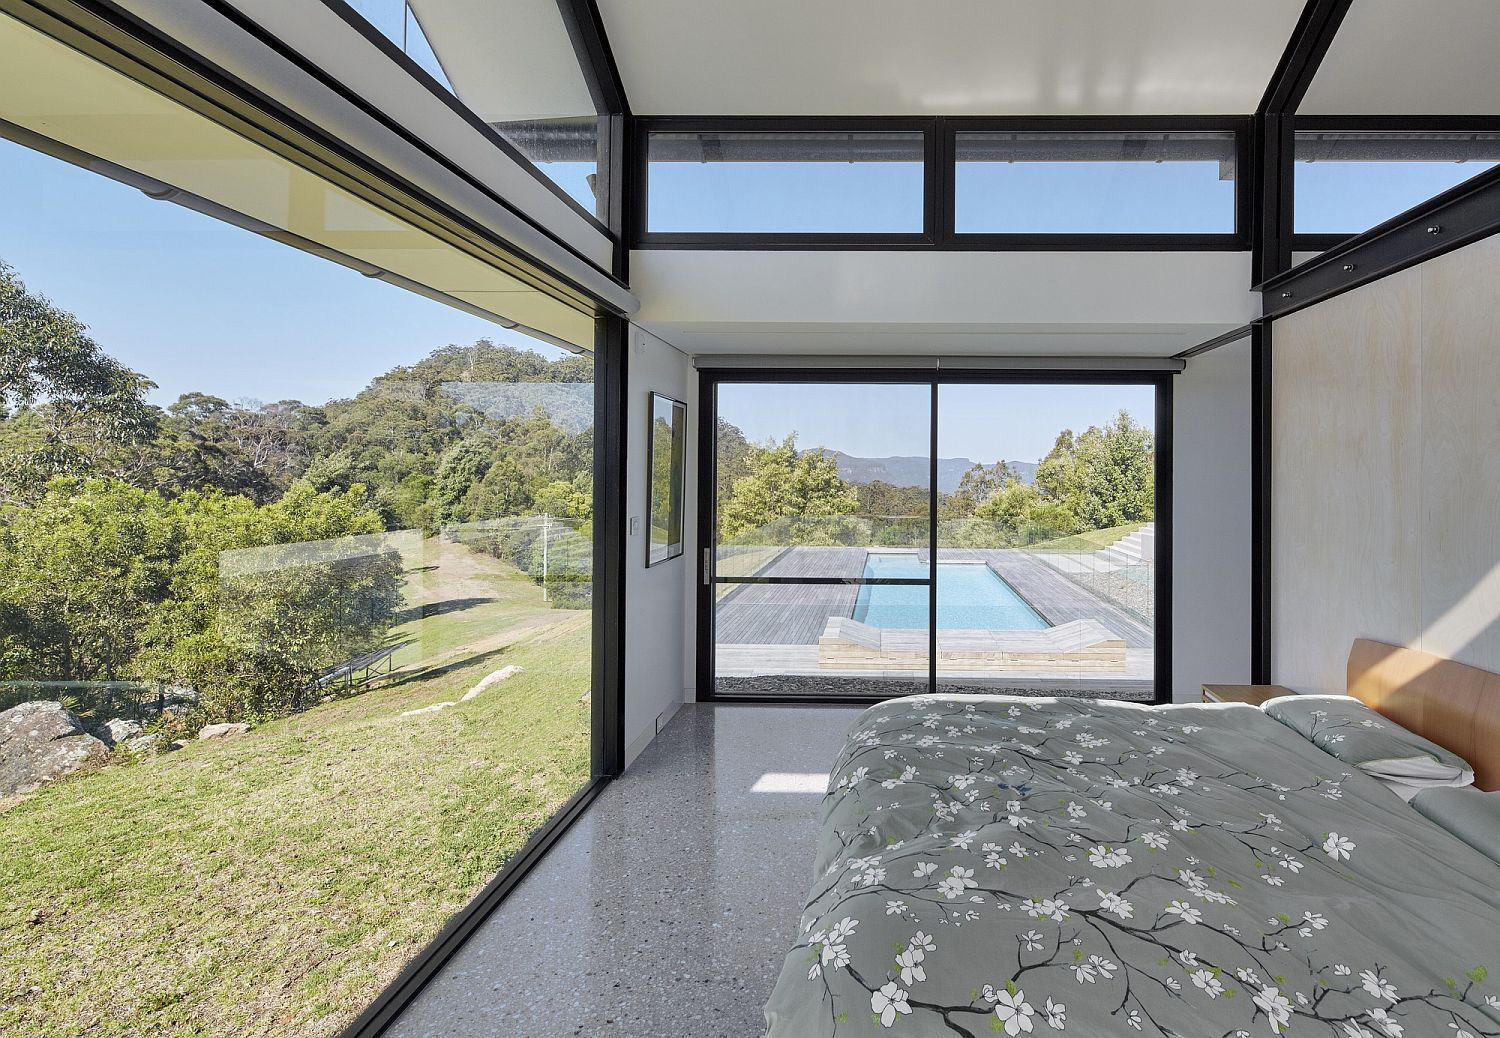 Bedroom with a sweeping view of the pool area and the valleys beyond